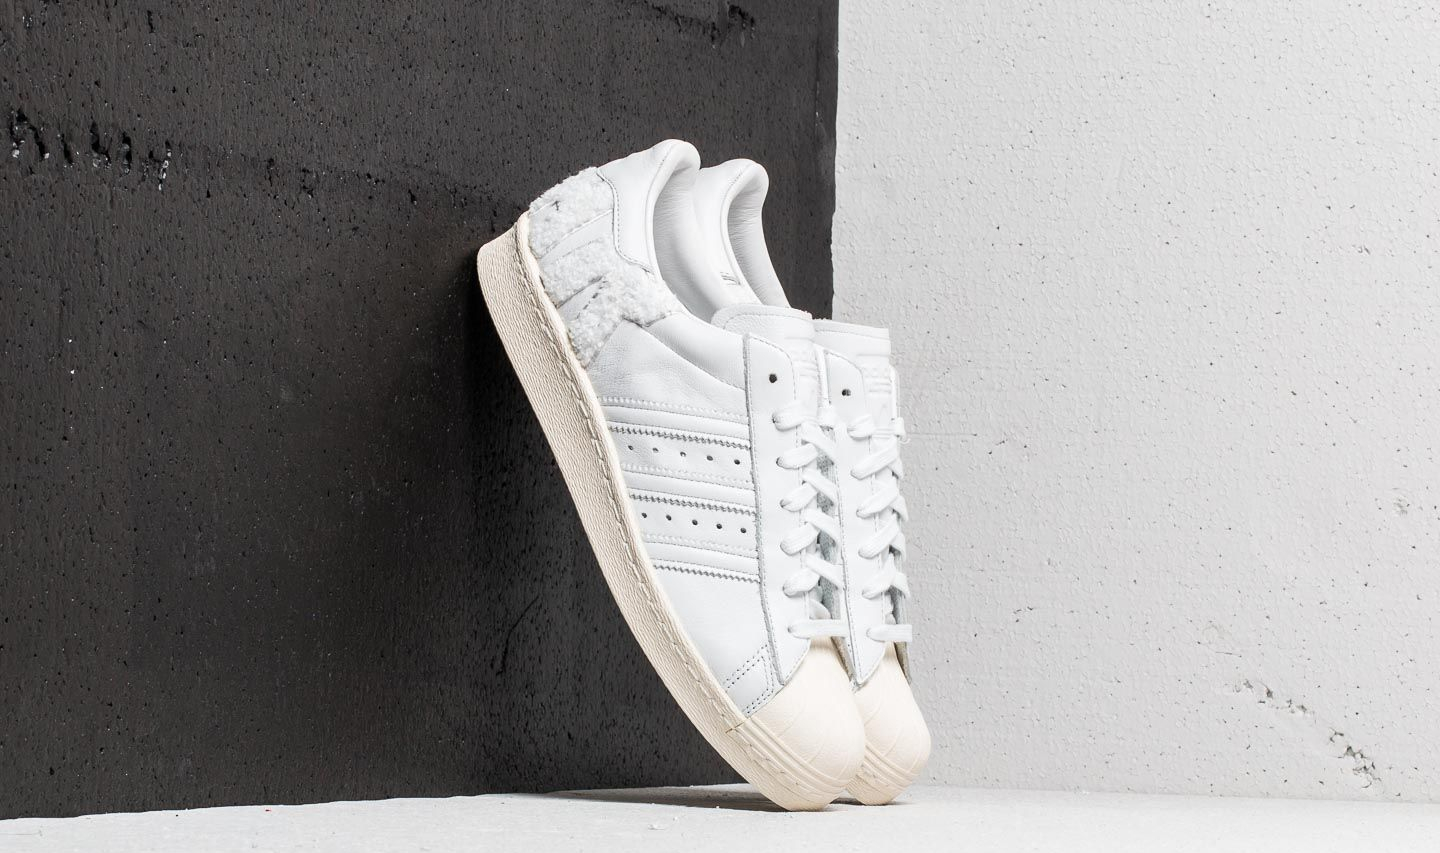 hot sales 97f1c e6068 adidas Originals adidas Superstar 80s Crystal White Crystal White Off  White